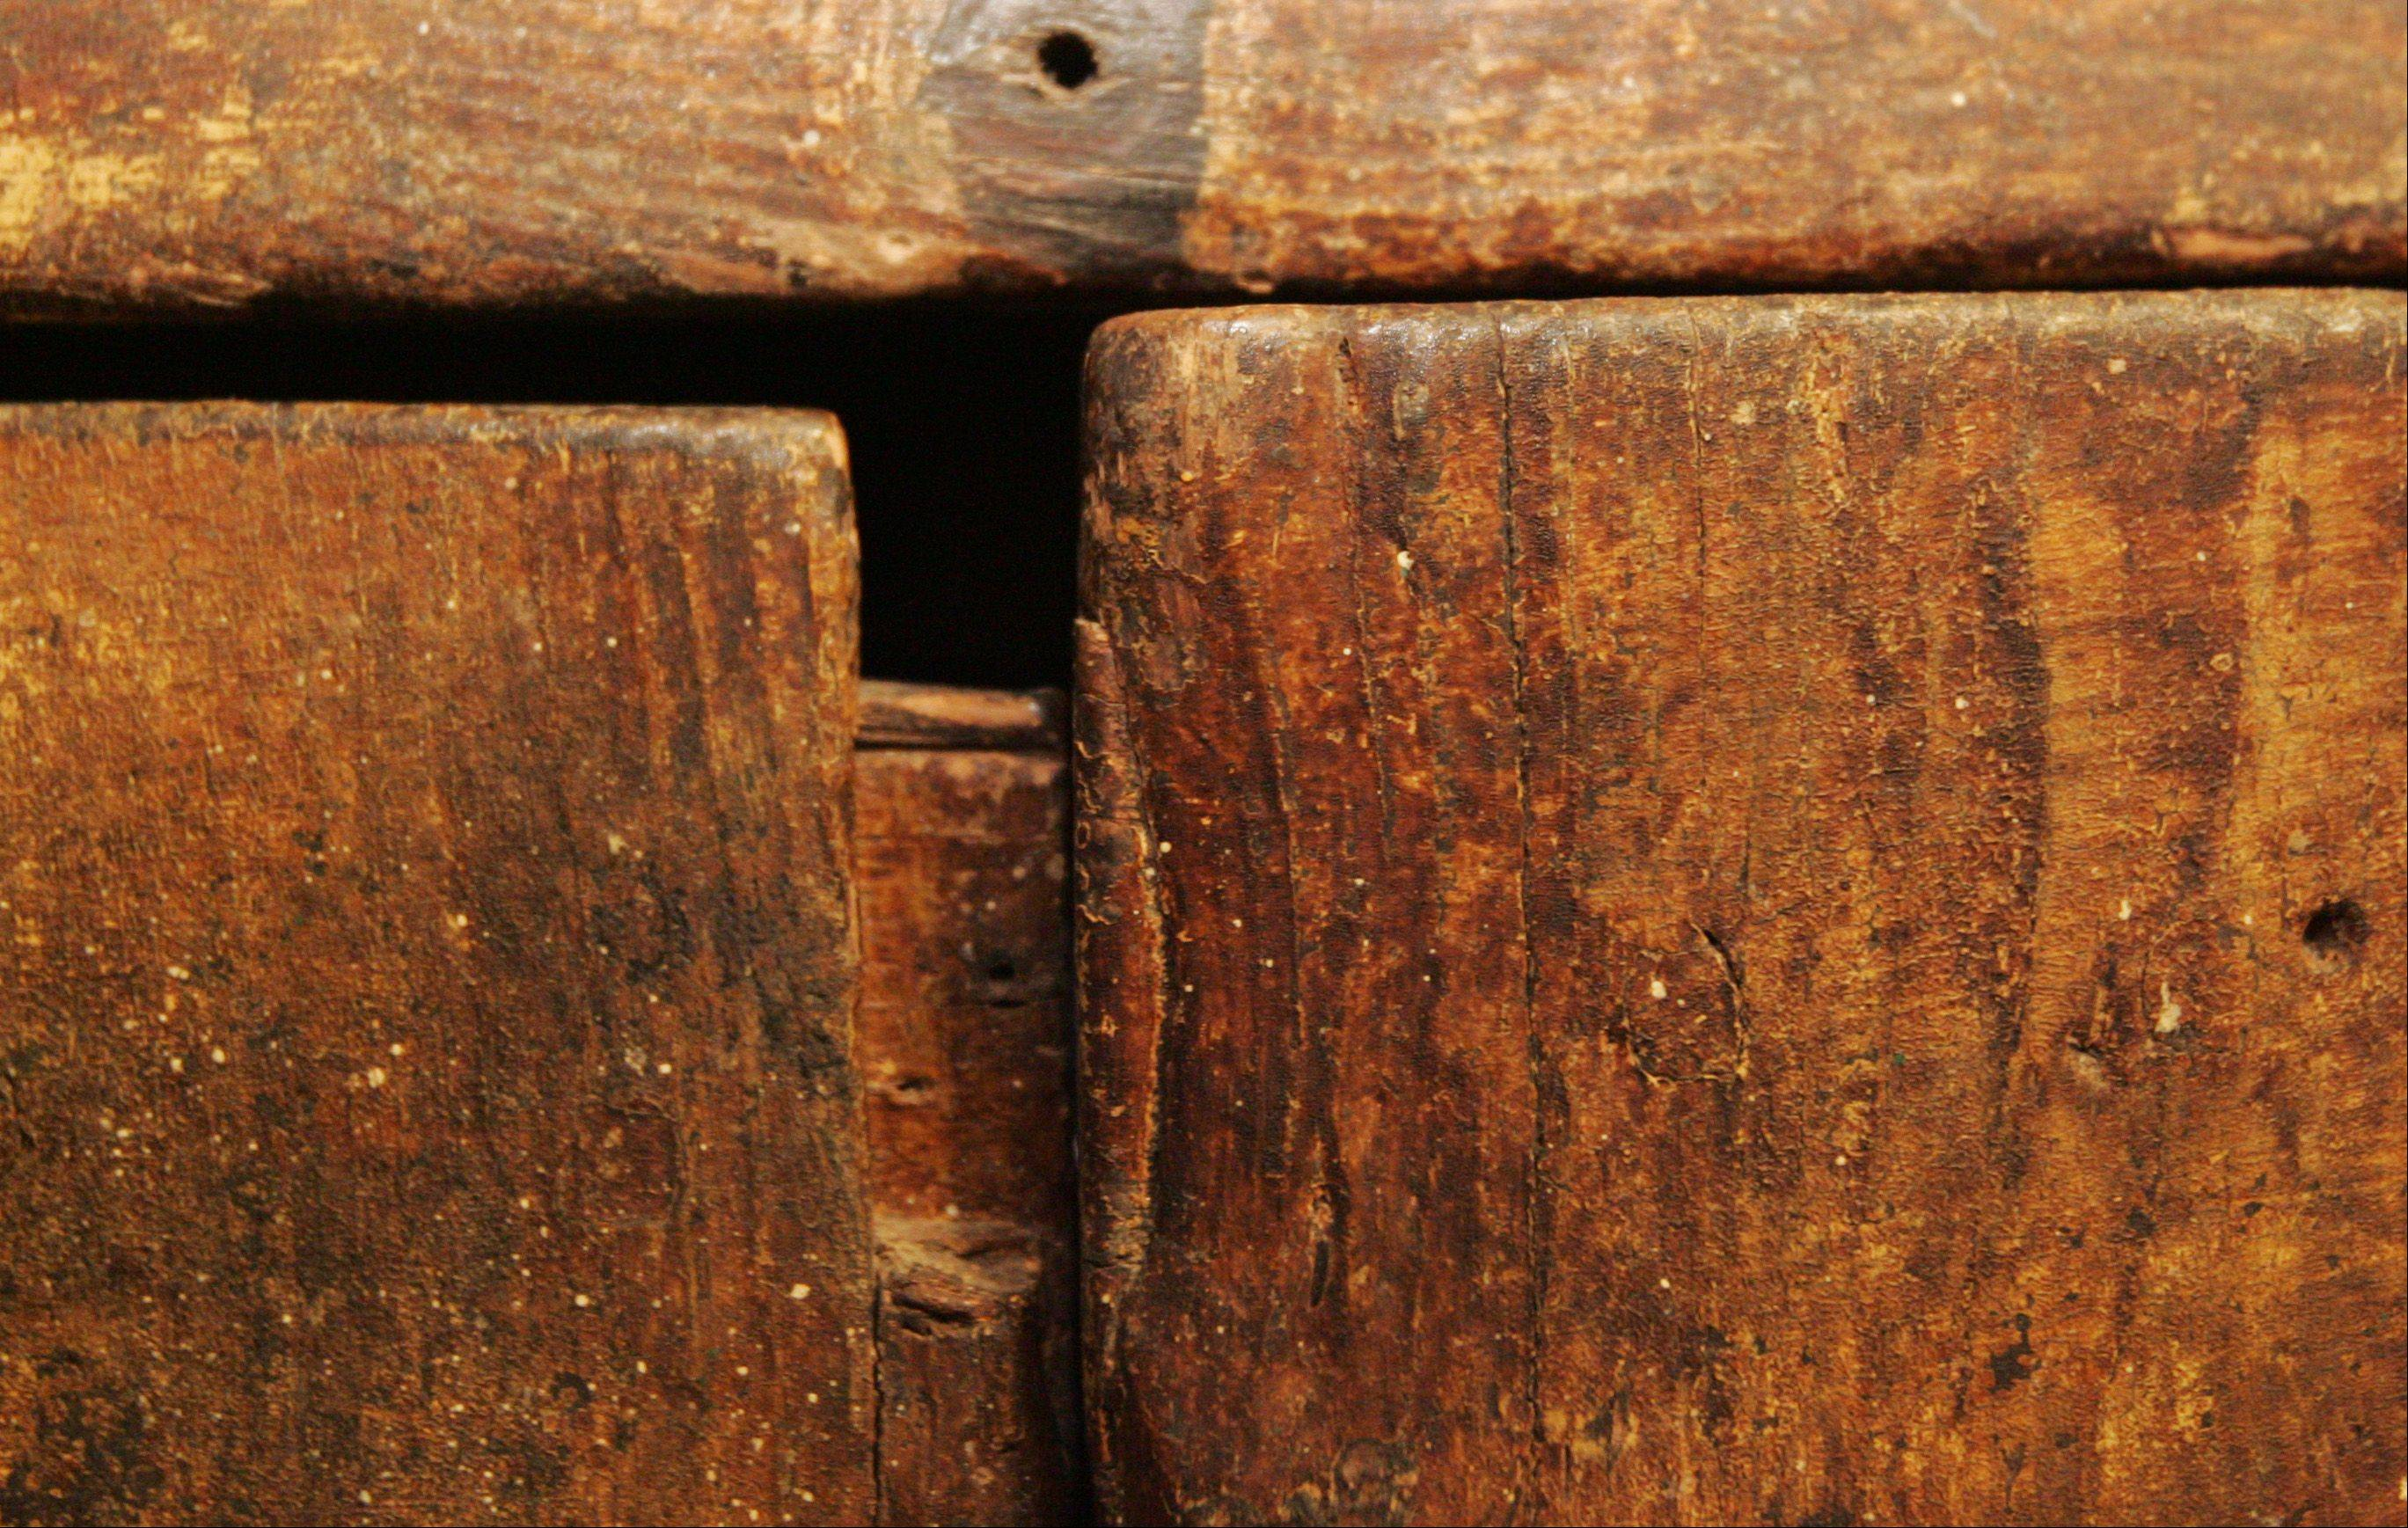 Much of the wooden furniture in the Little home bears signs of wear from the years of use, but that's just the way they like it.